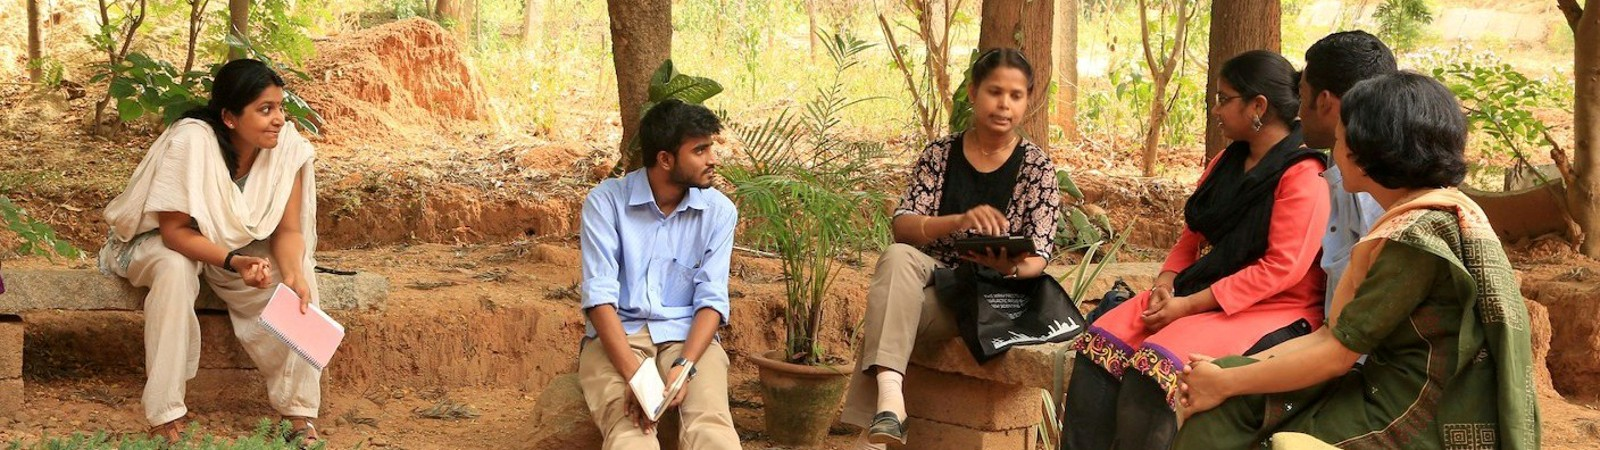 Bhoomi College's Post Graduate Course on Sustainable Living: Apply by May 30